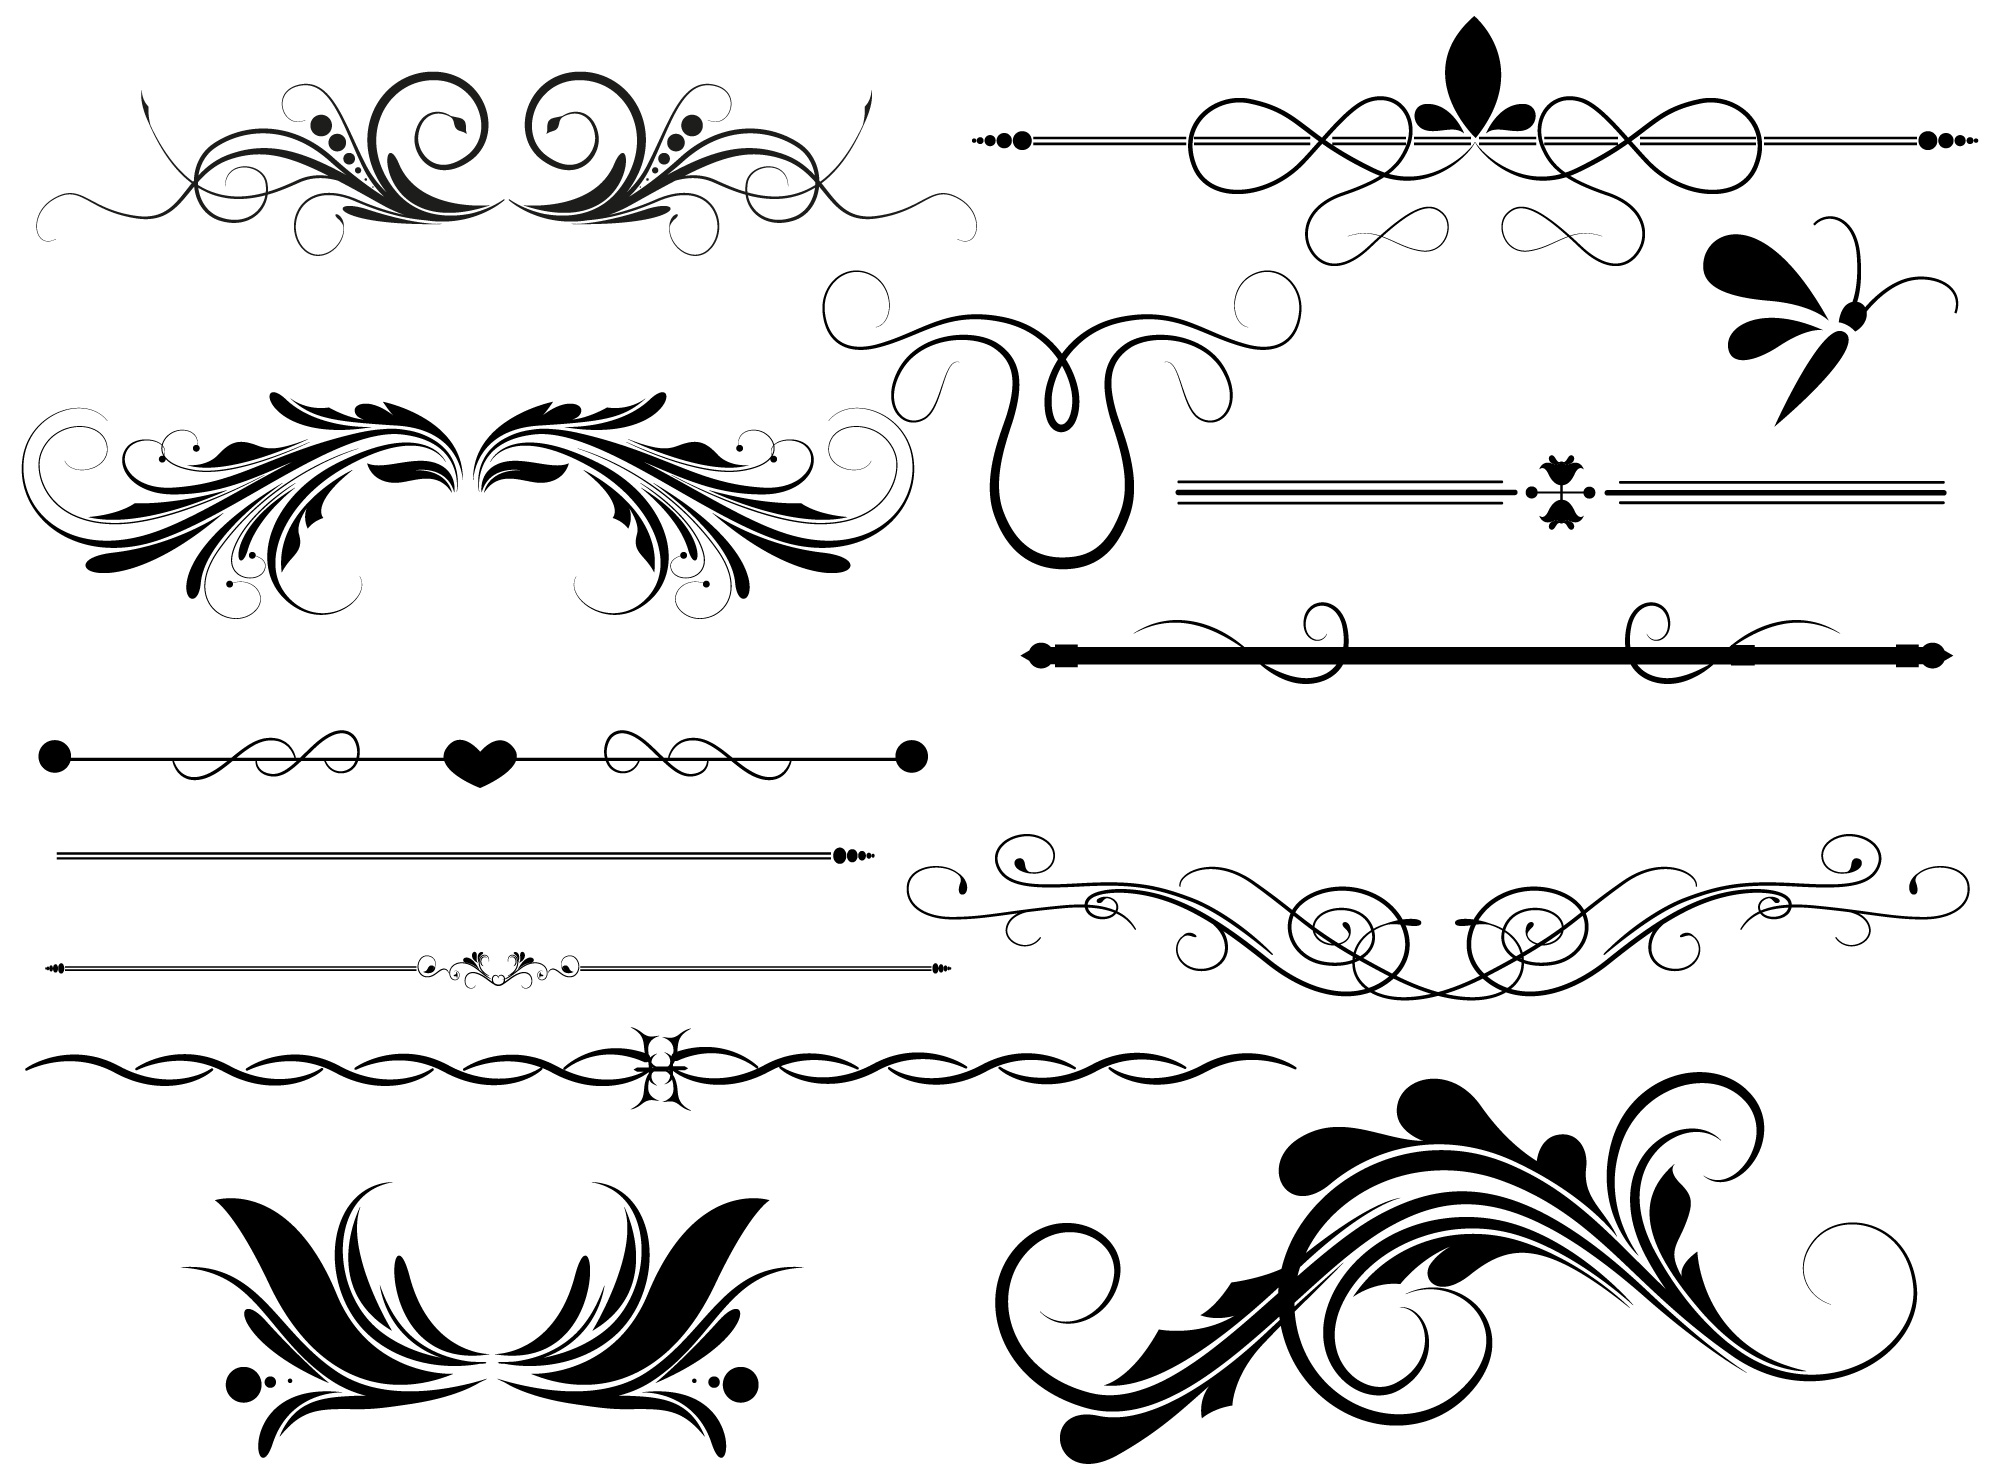 13 Photoshop Vector Line Borders Images - Free Vector ...